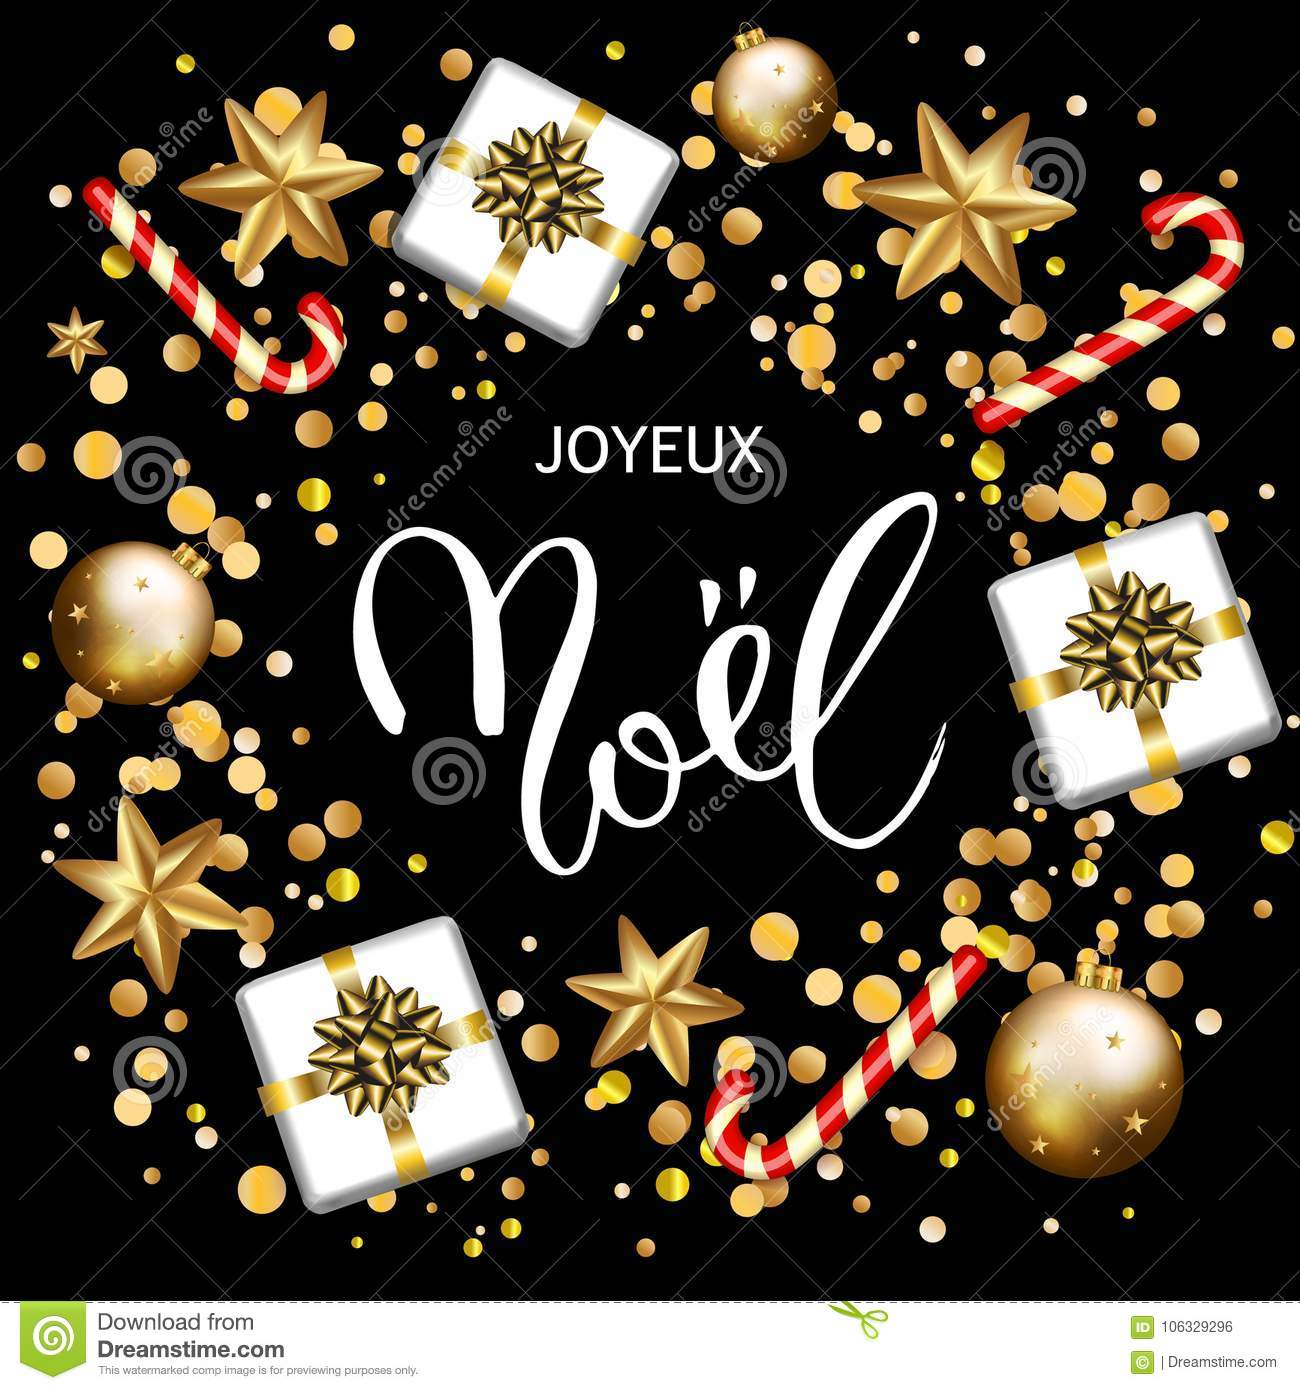 French Merry Christmas Joyeux Noel Greeting Card With Gifts, Can ...